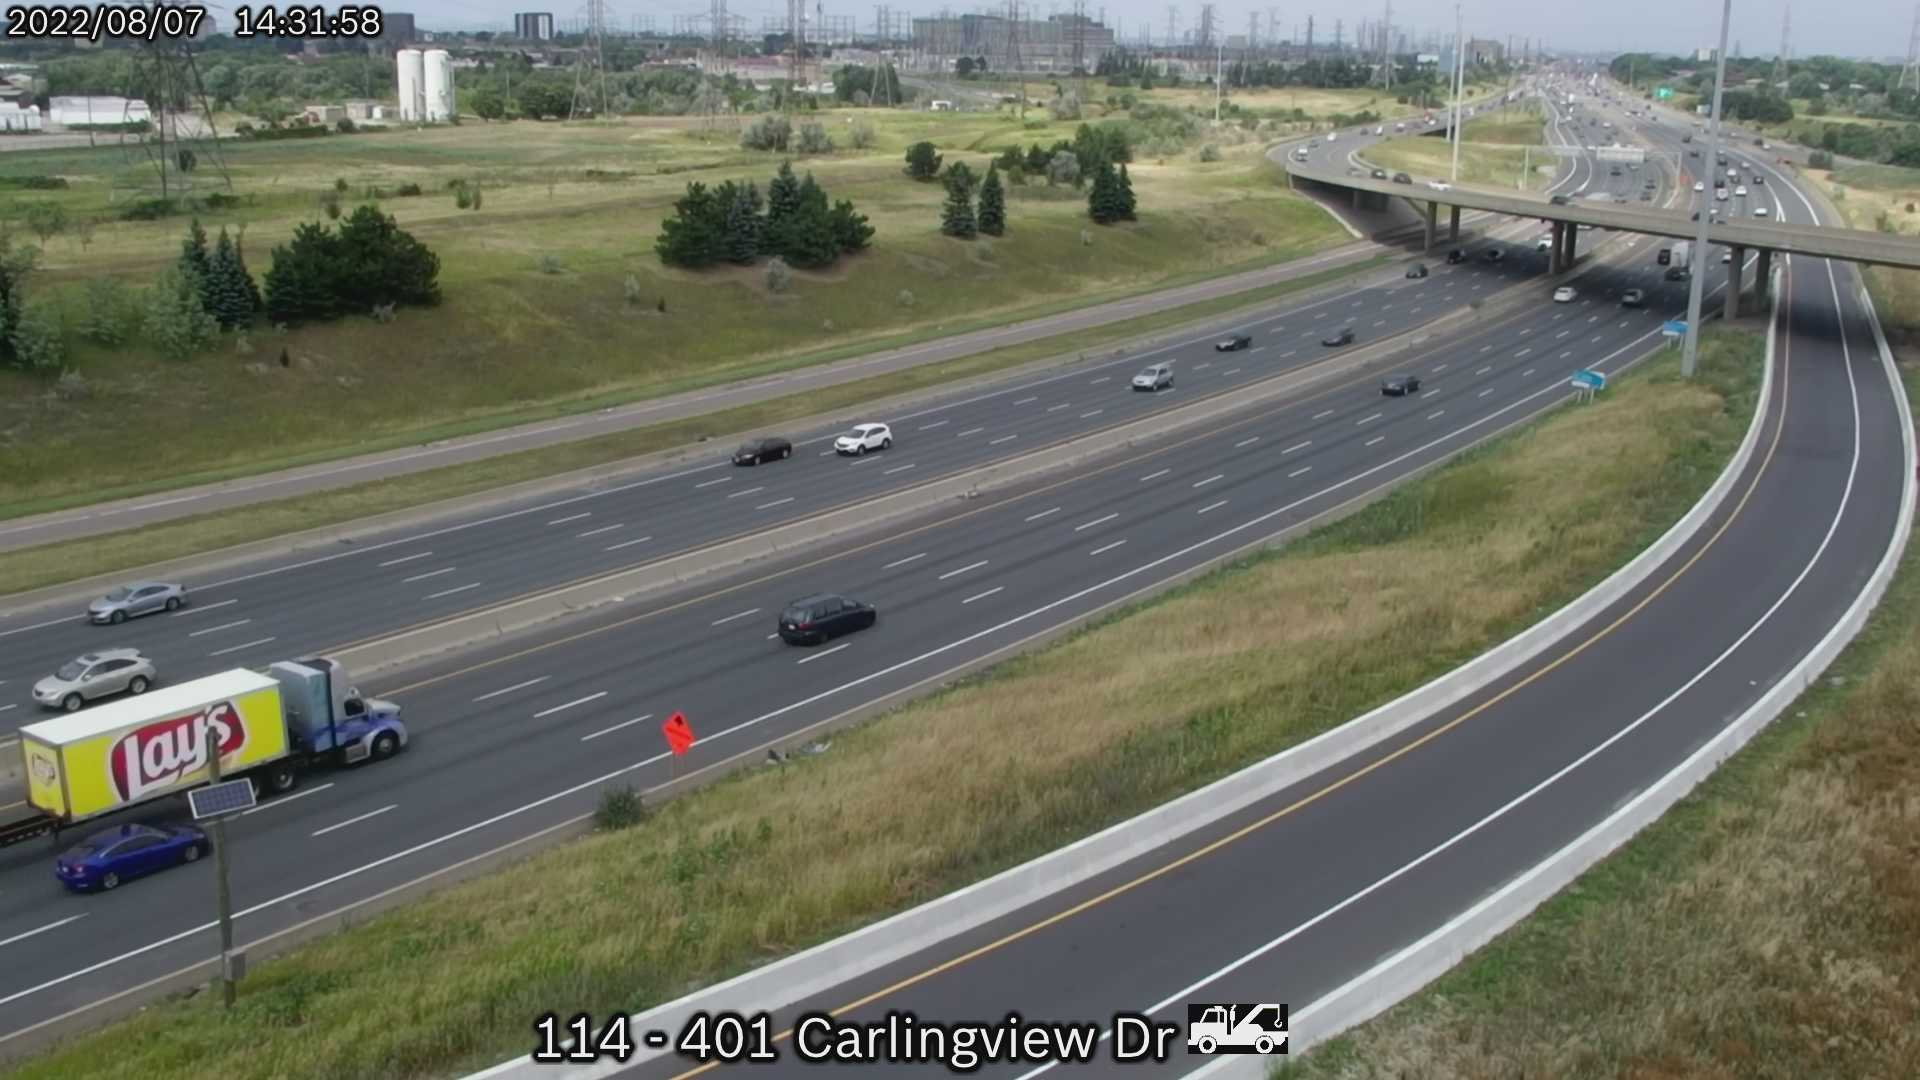 Webcam of South side of Highway 401 near Renforth Drive of the MTO